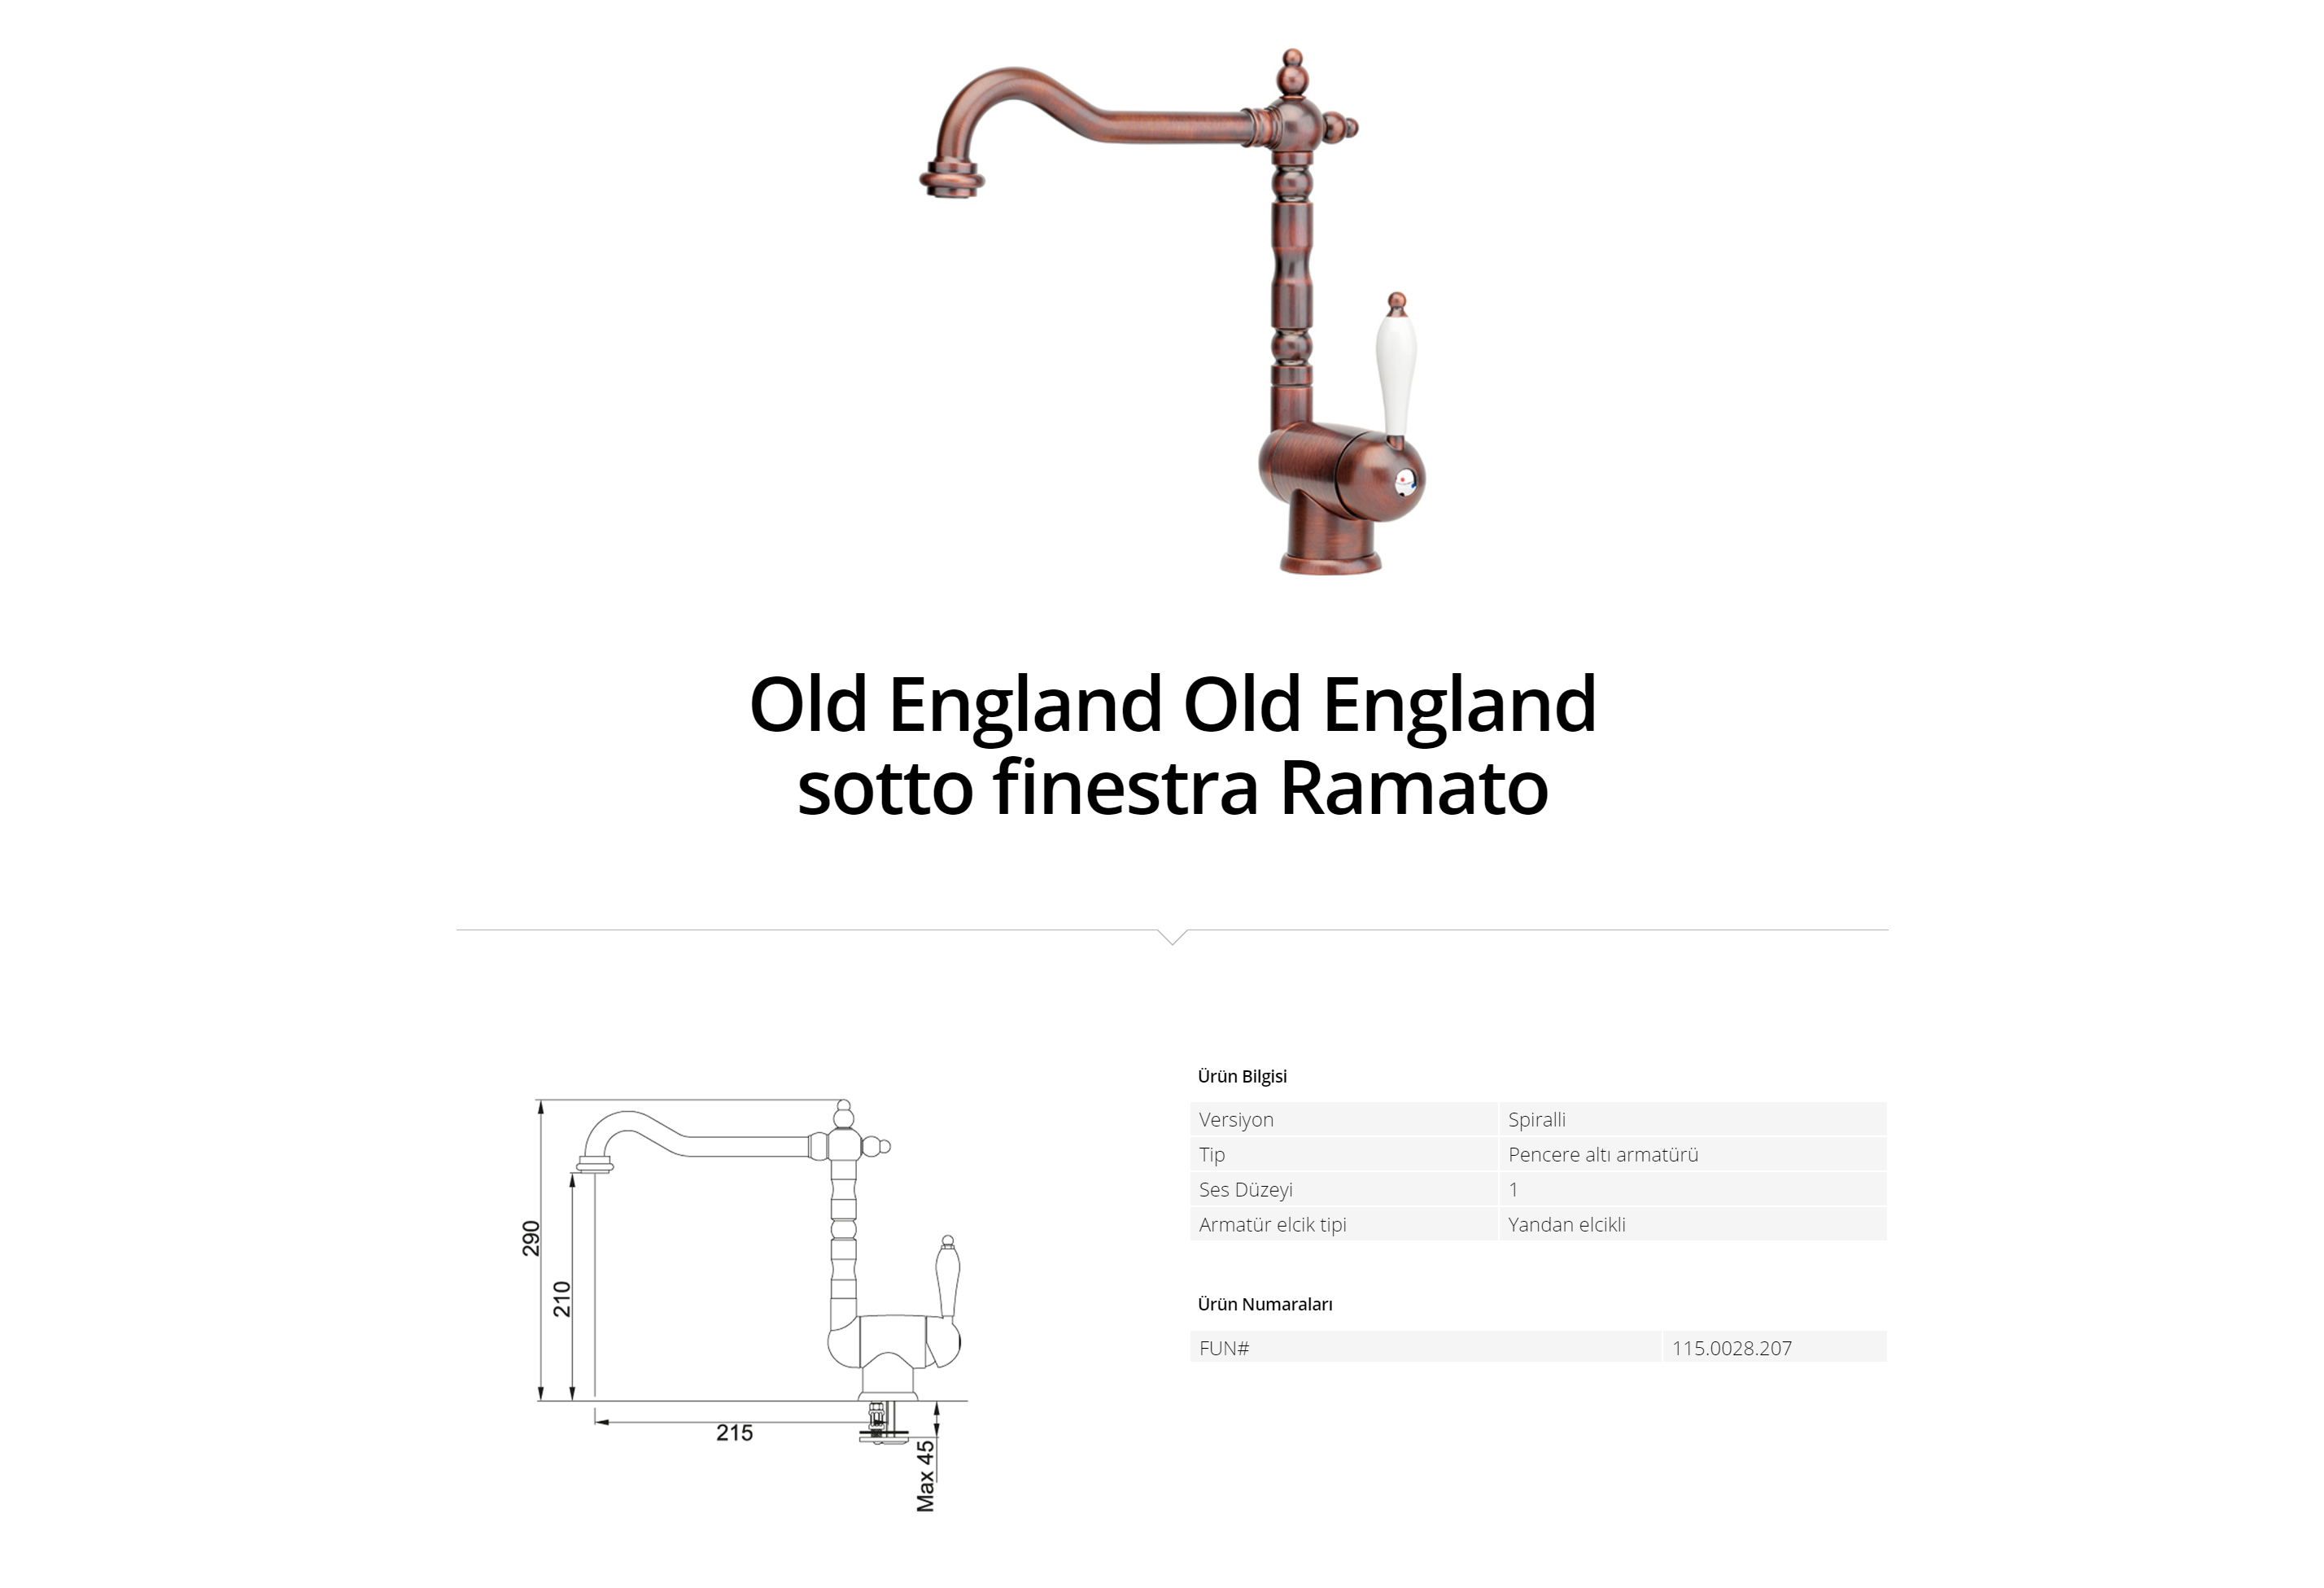 Franke Old England sotto finestra Ramato